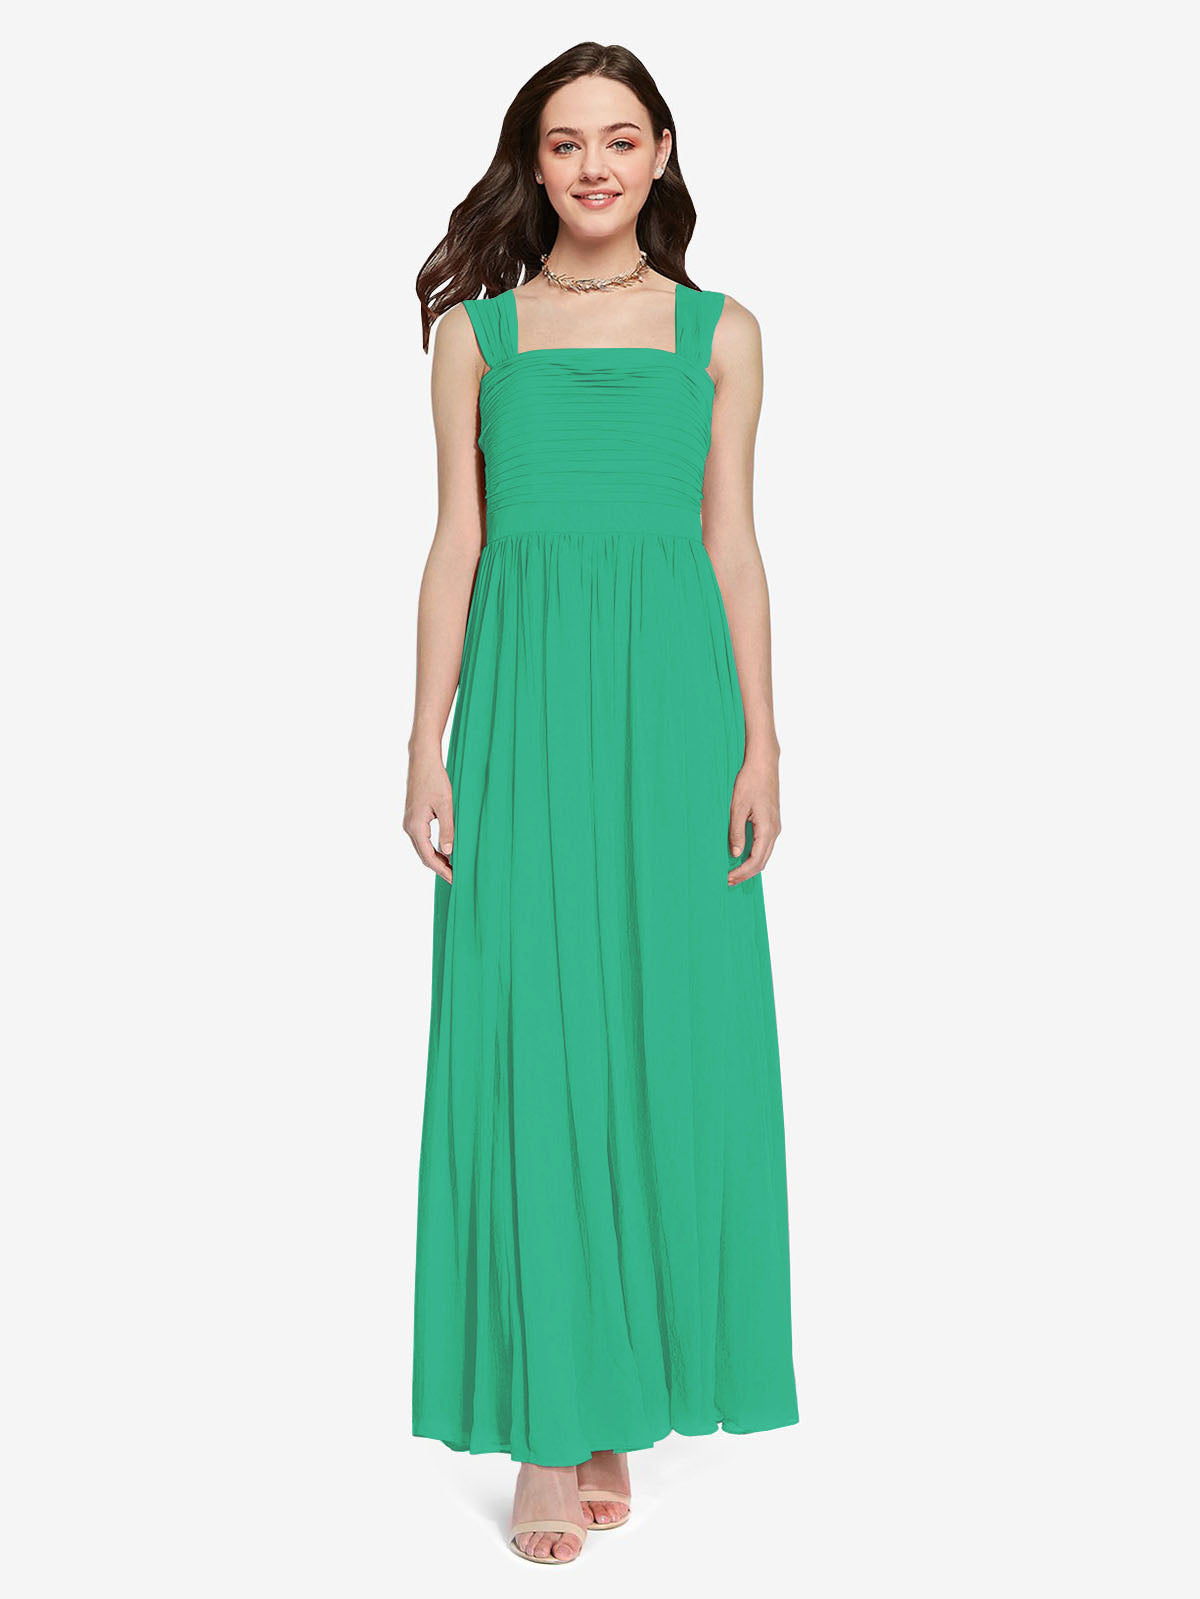 Long A-Line Square Sleeveless Emerald Green Chiffon Bridesmaid Dress Aldridge